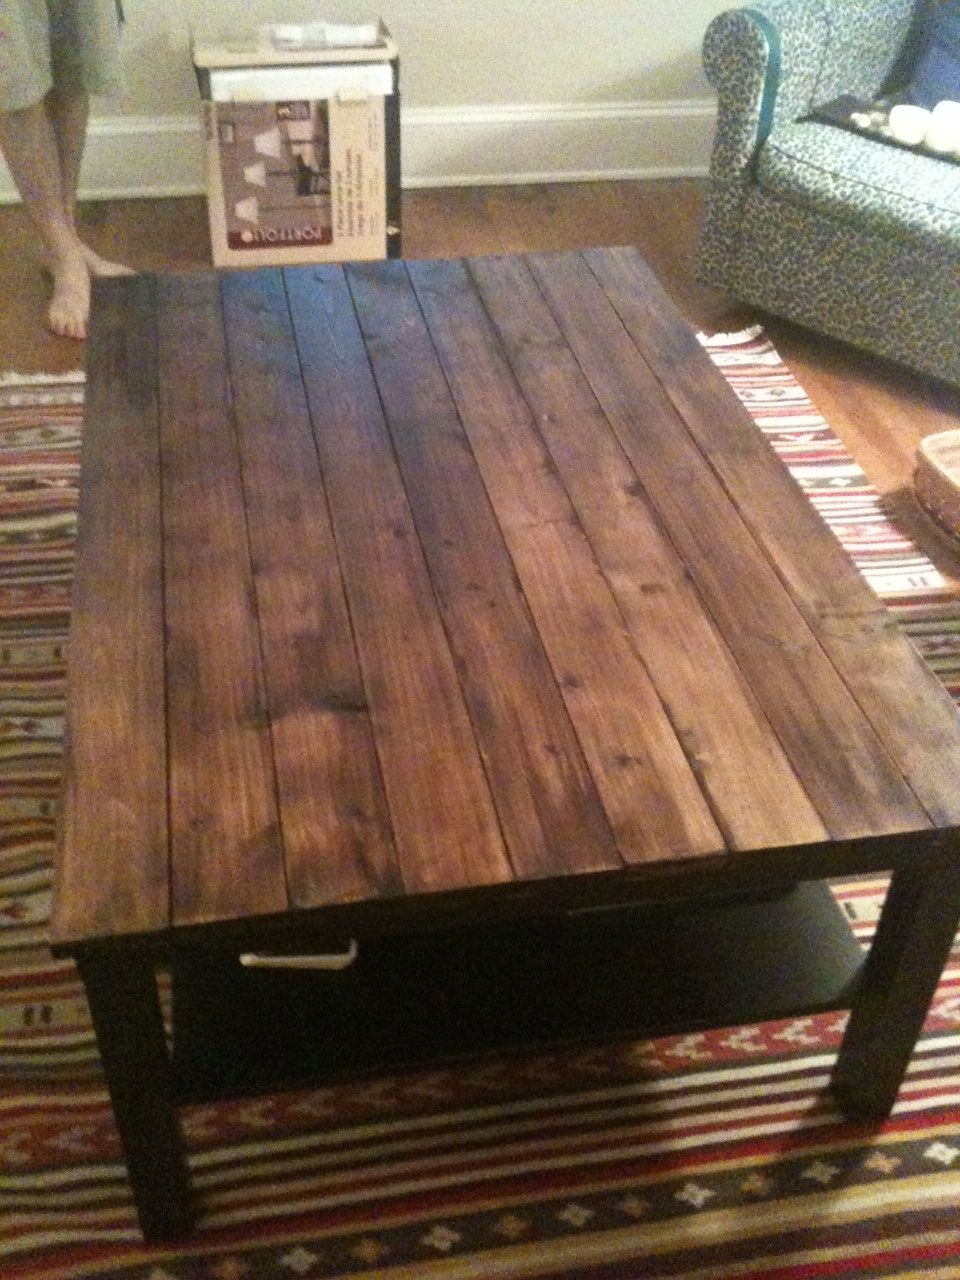 Diy Rustic Wood Table Easy And Only Twenty Bucks Things For